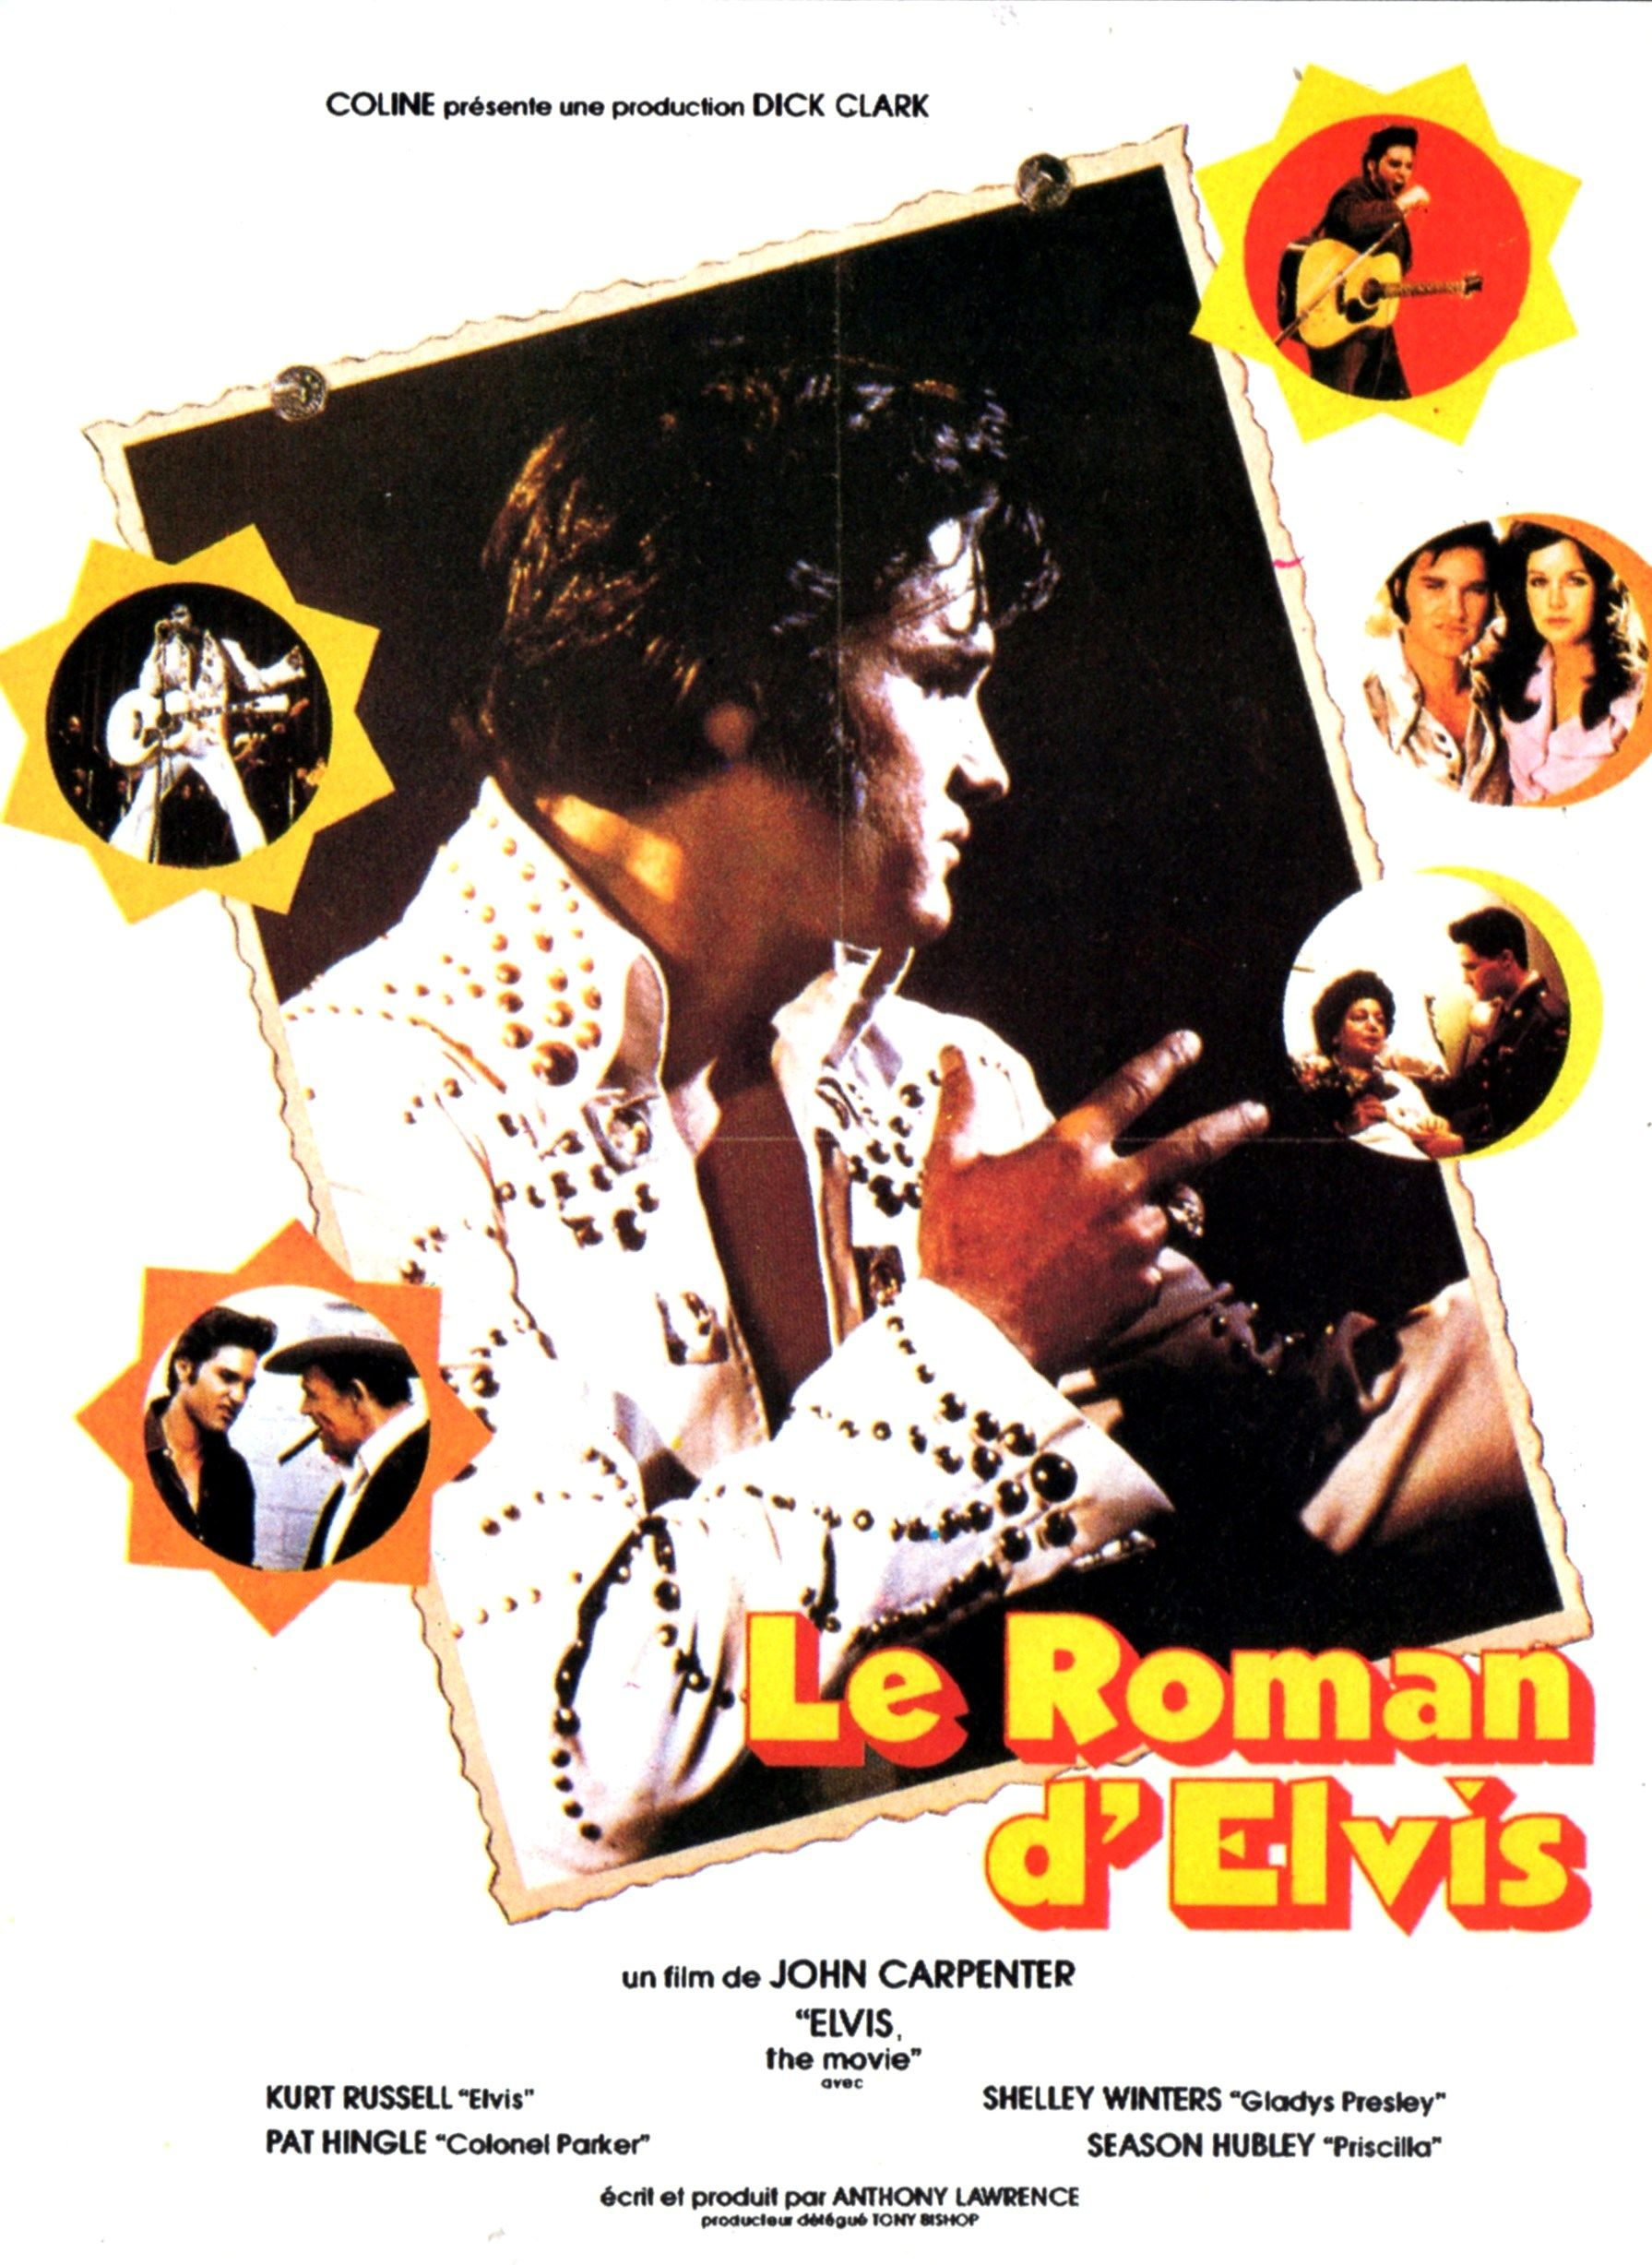 Le roman d 39 elvis 1979 one for the money two for - One for the money two for the show ...